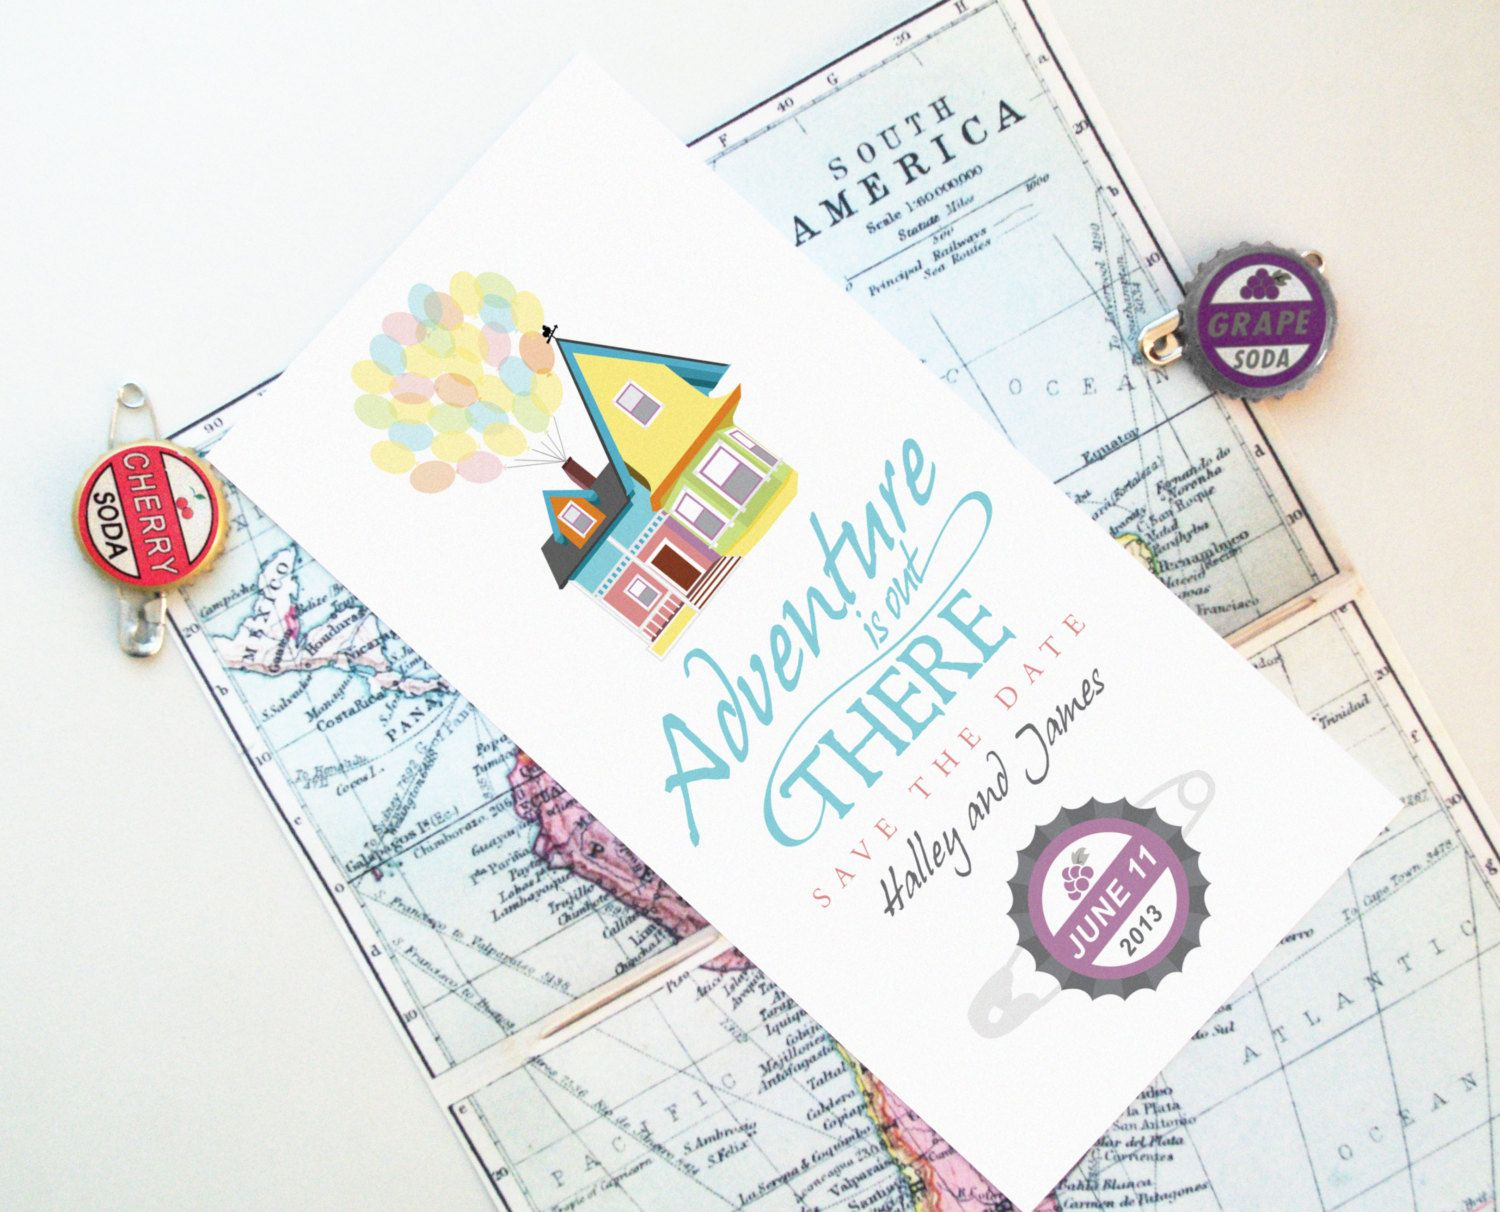 Design Fee - UP Save the Date Inspired By Disney Pixar Movie w/Grape ...